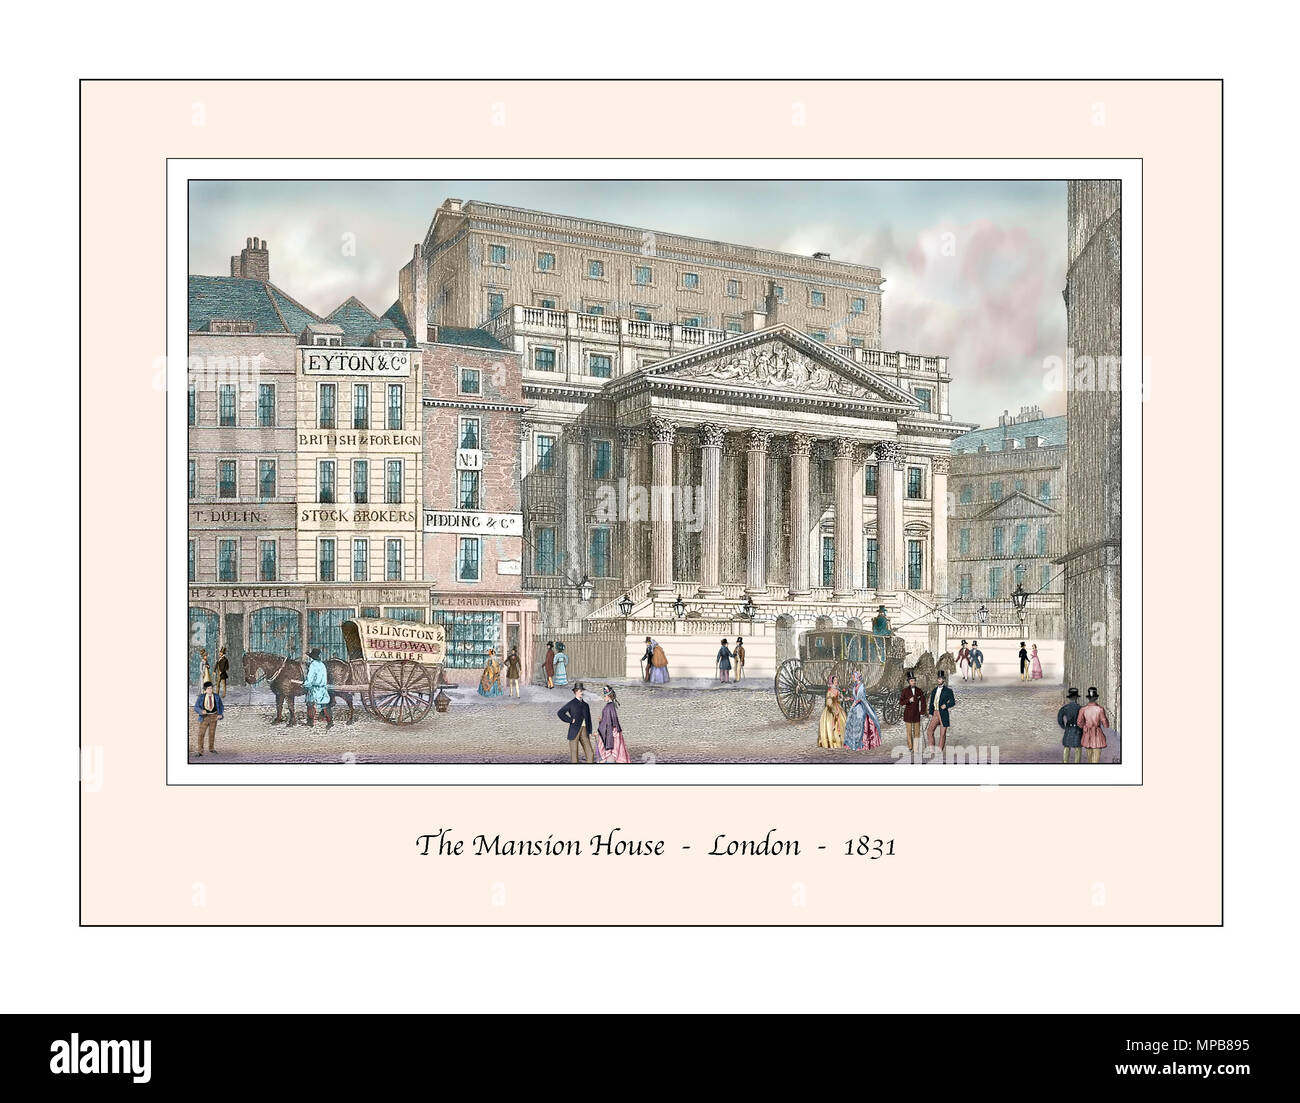 The Mansion House London Original Design based on a 19th century Engraving - Stock Image